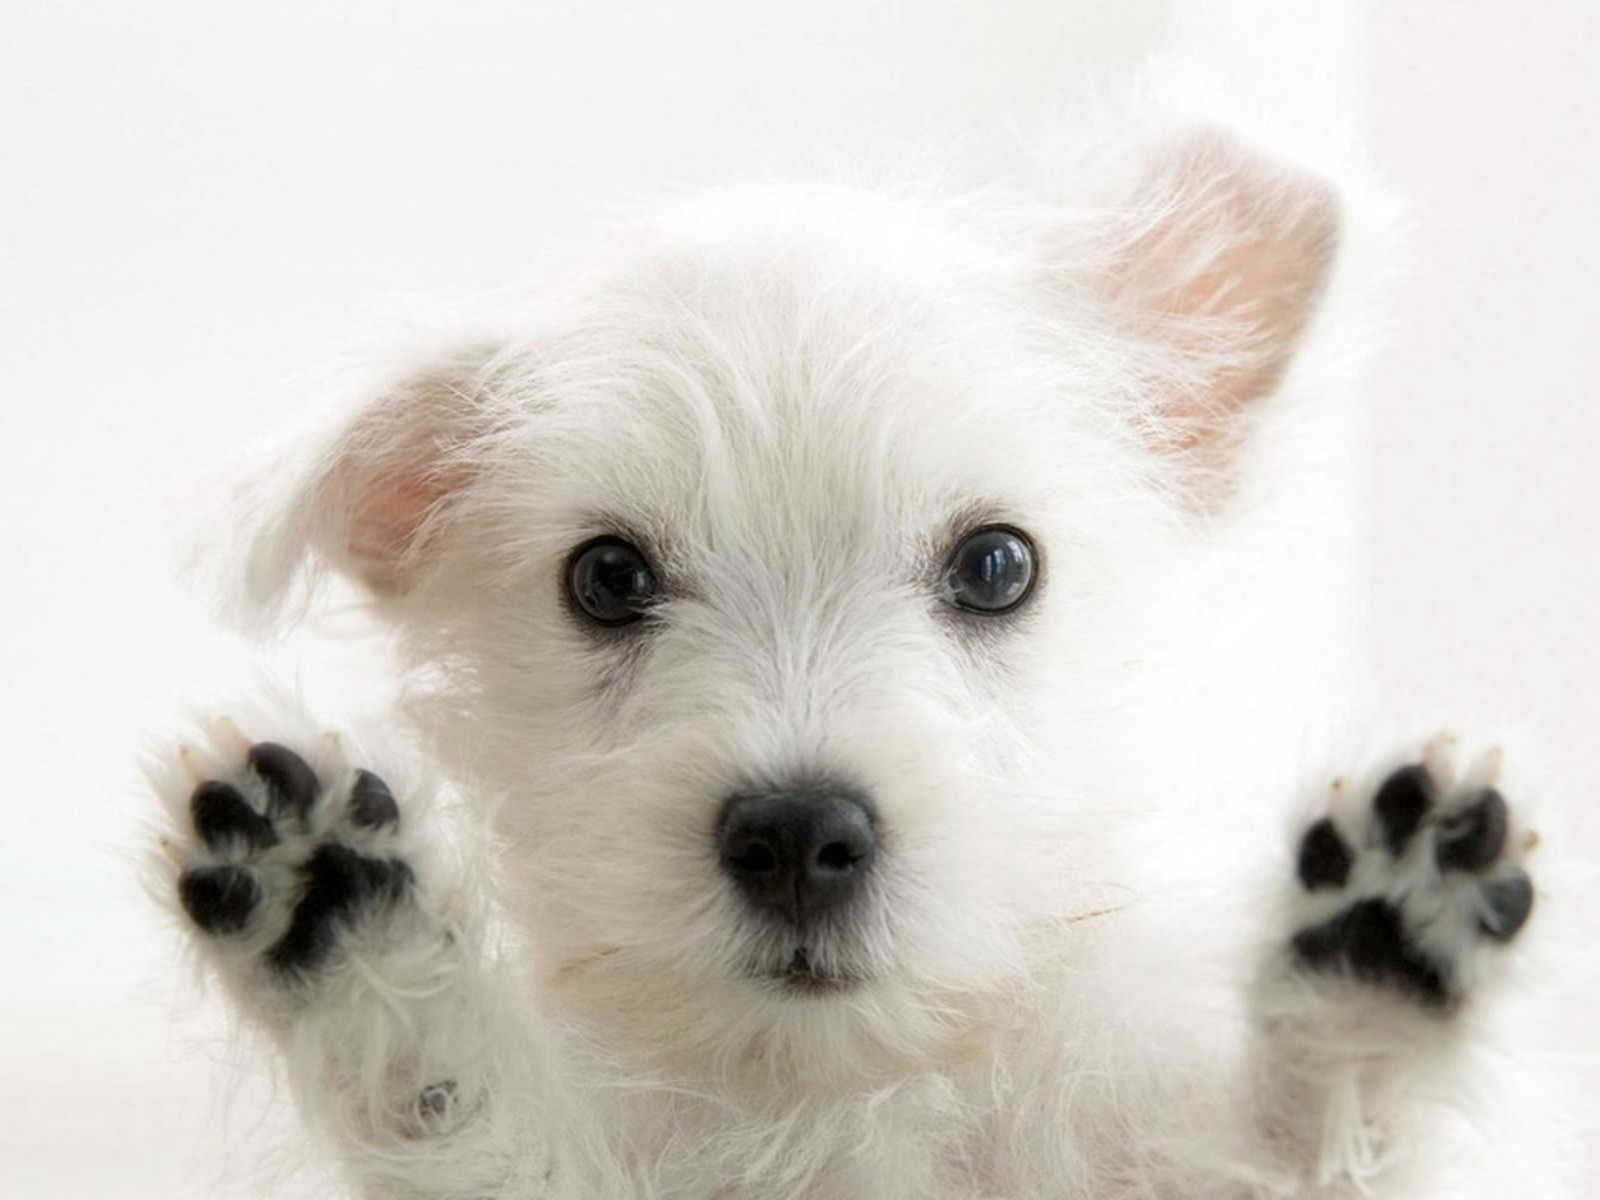 Cute White Dog Photo Wallpaper on this Dogs Wallpapers Backgrounds 1600x1200